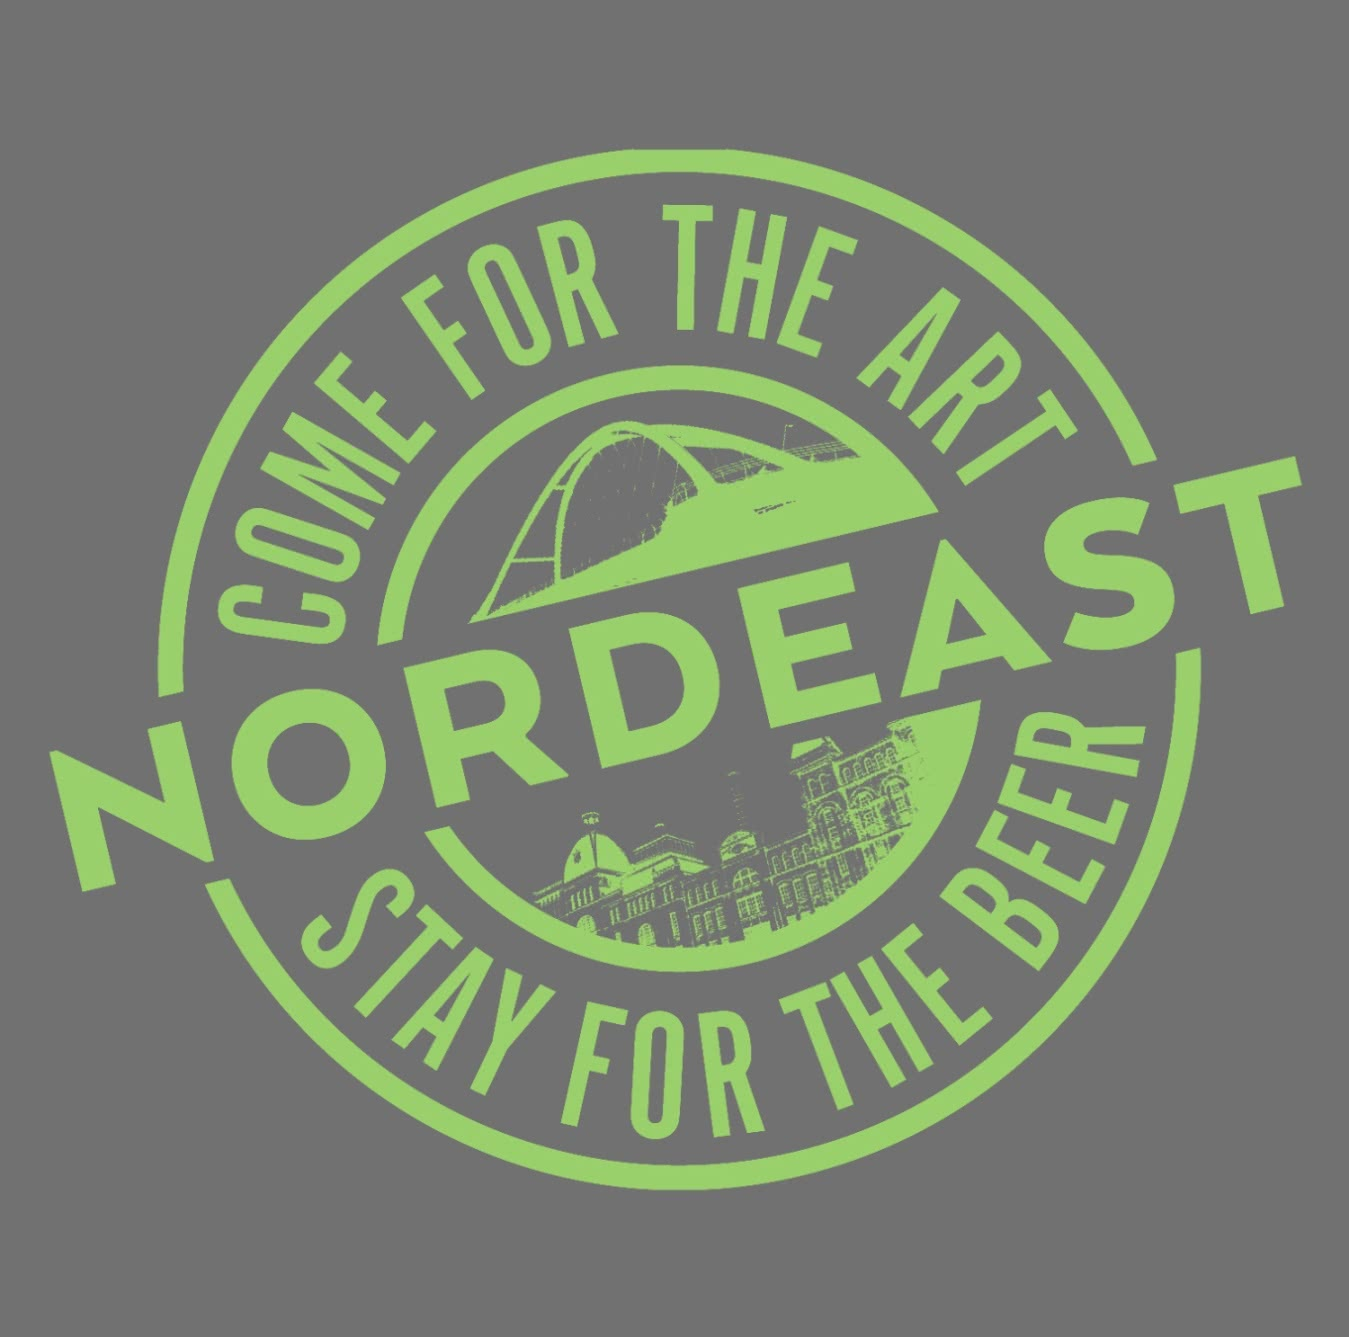 Nordeast Big River Brew Fest